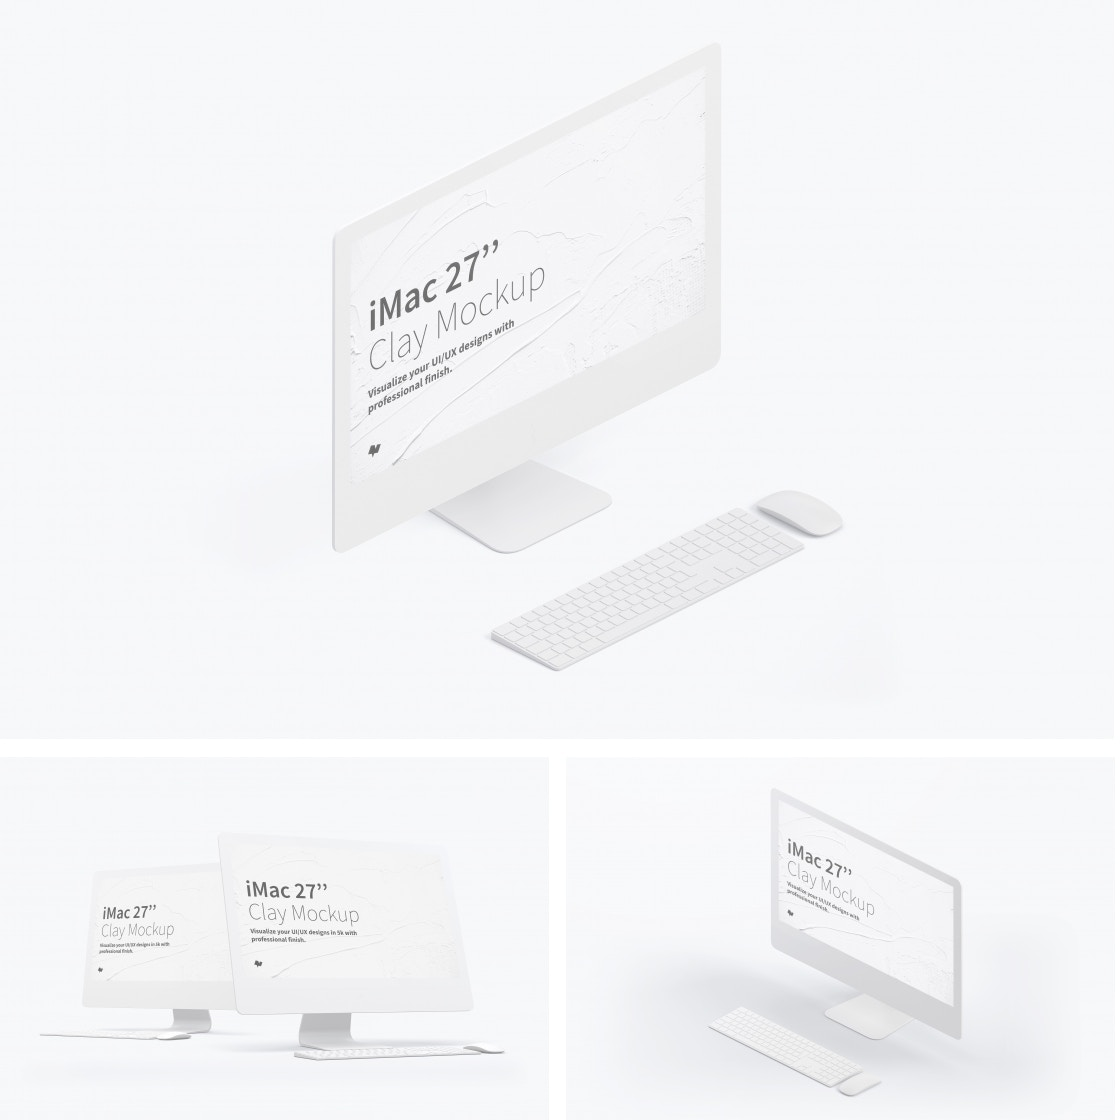 "Clay iMac 27"" Mockups by Original Mockups on Original Mockups"